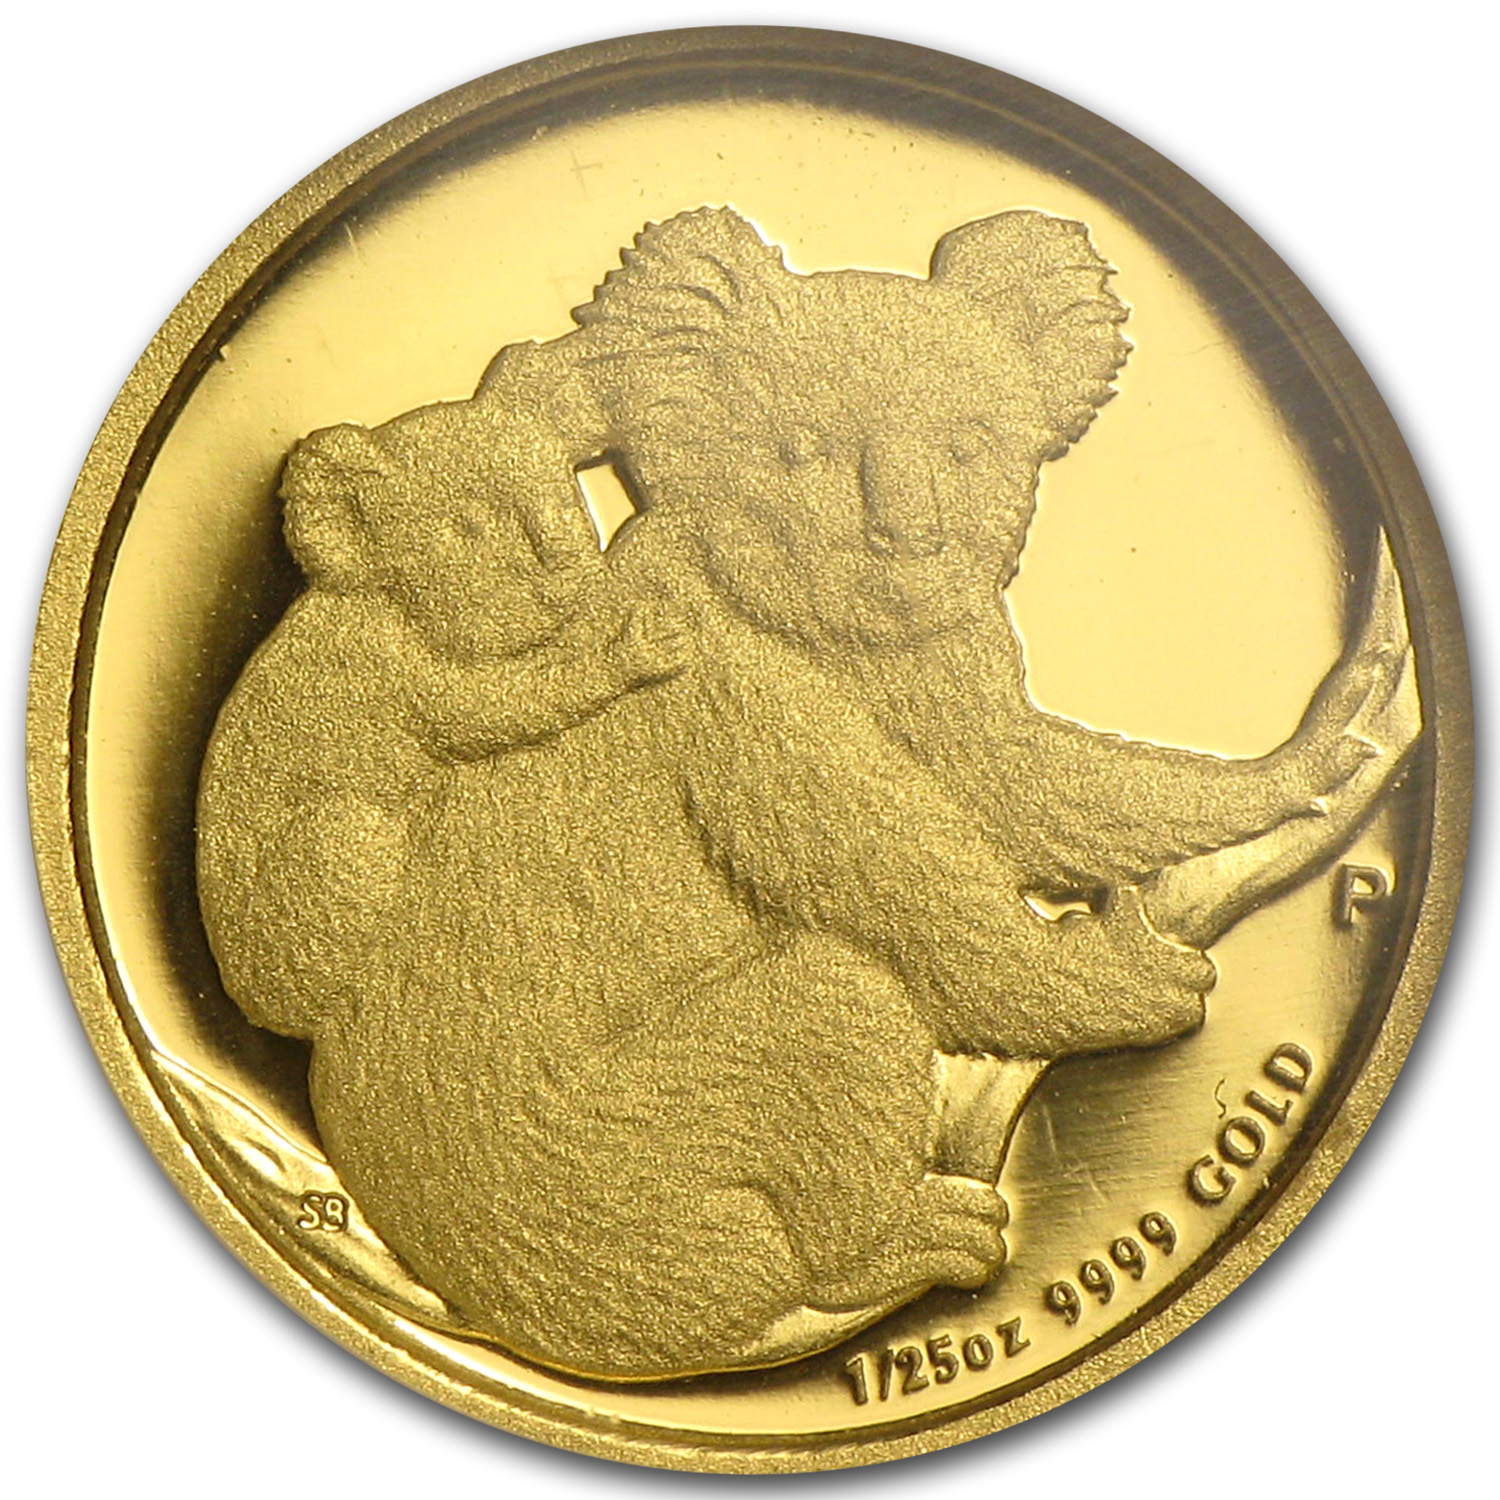 2008 1/25 oz Proof Gold Koala PF-70 UCAM NGC